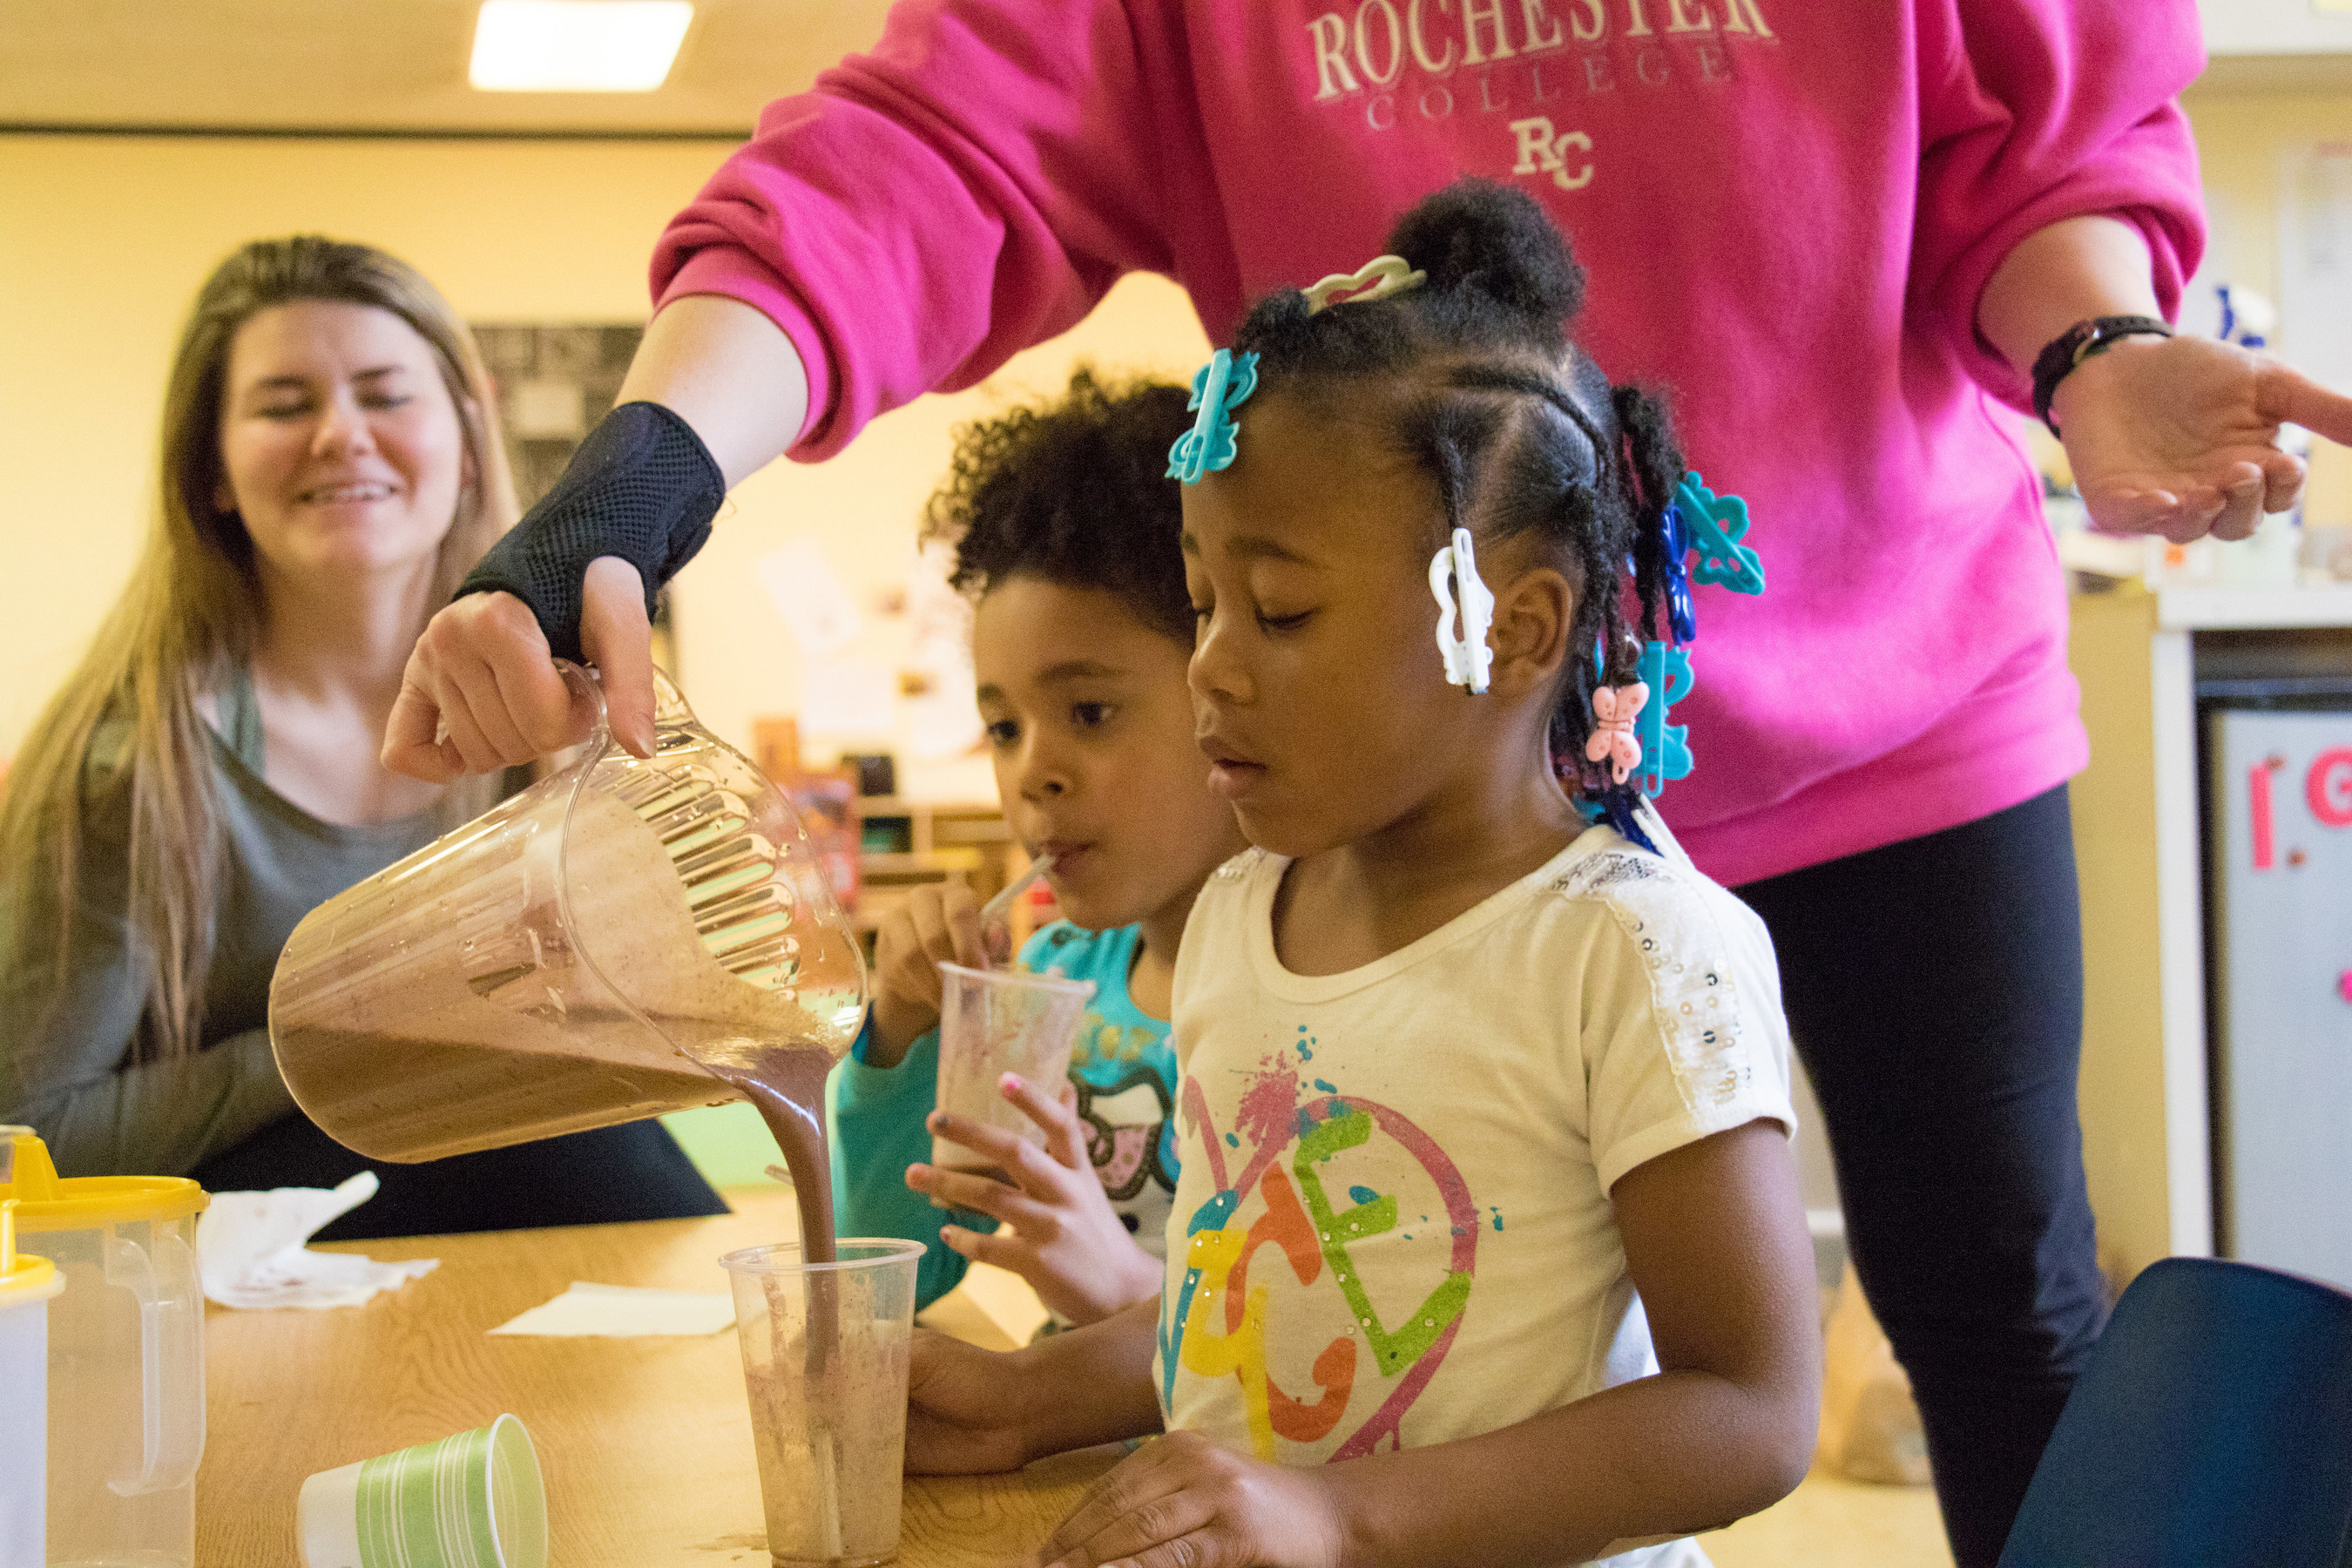 """Brianna, 5, is a participant in Save the Children's smoothie program at her daycare at Alpha Montessori School at the YWCA in Flint, Mich. She just tried a new recipe, """"purple,"""" which is made of blueberries and spinach. She liked it so much, she asked for seconds. The Save the Children smoothie program is helping children to eat healthy, nutrient-rich foods to mitigate the impact of lead exposure. Save the Children is in Flint, responding to the water crisis. Alpha child care serves 90 children, over 60 of whom are from low-income, vulnerable families. Photo by Stuart Sia / Save"""